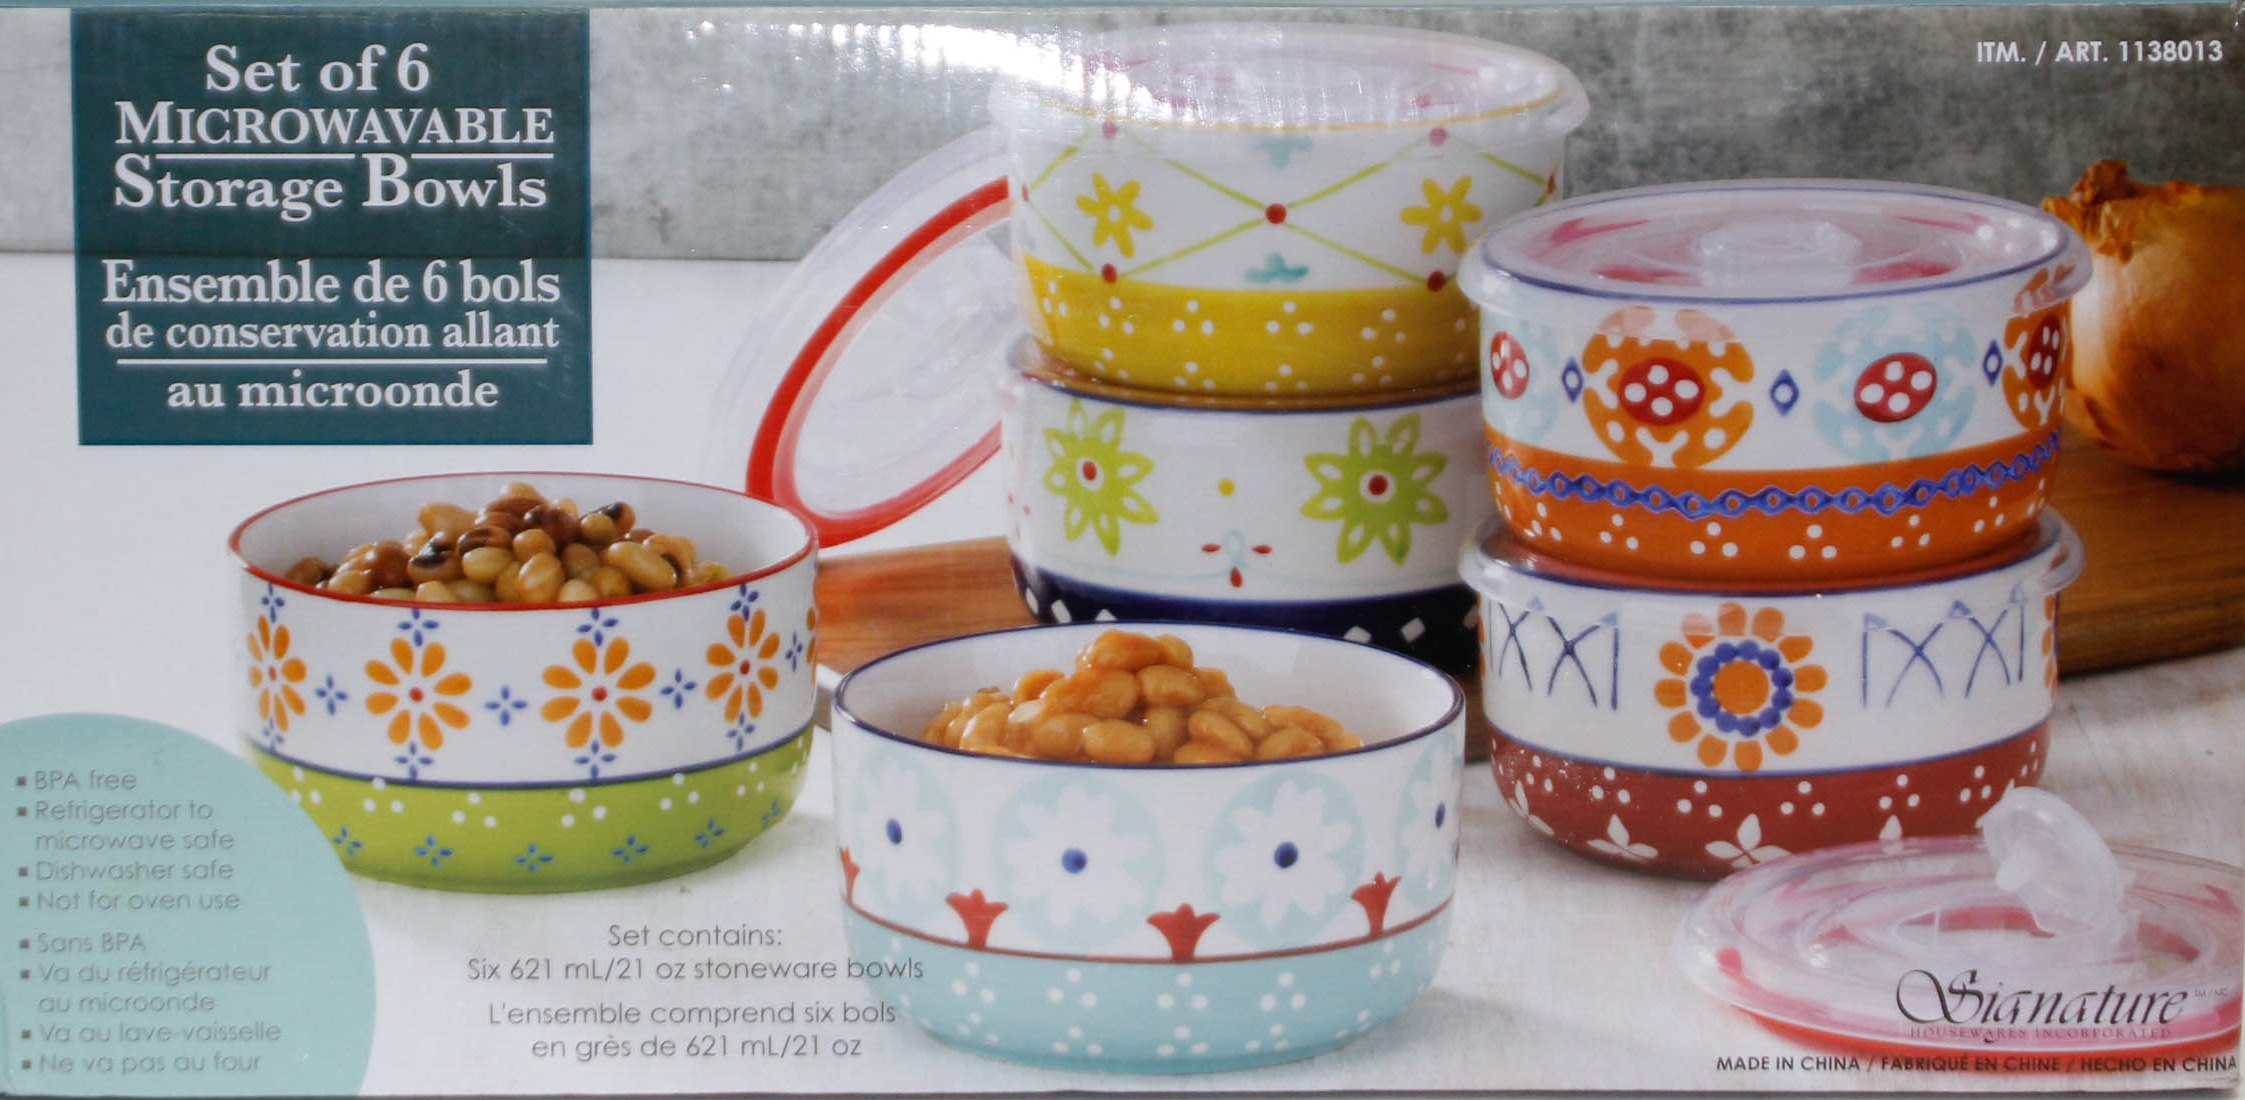 Microwavable Signature Housewares 6-piece Stoneware Storage Bowls With Lids